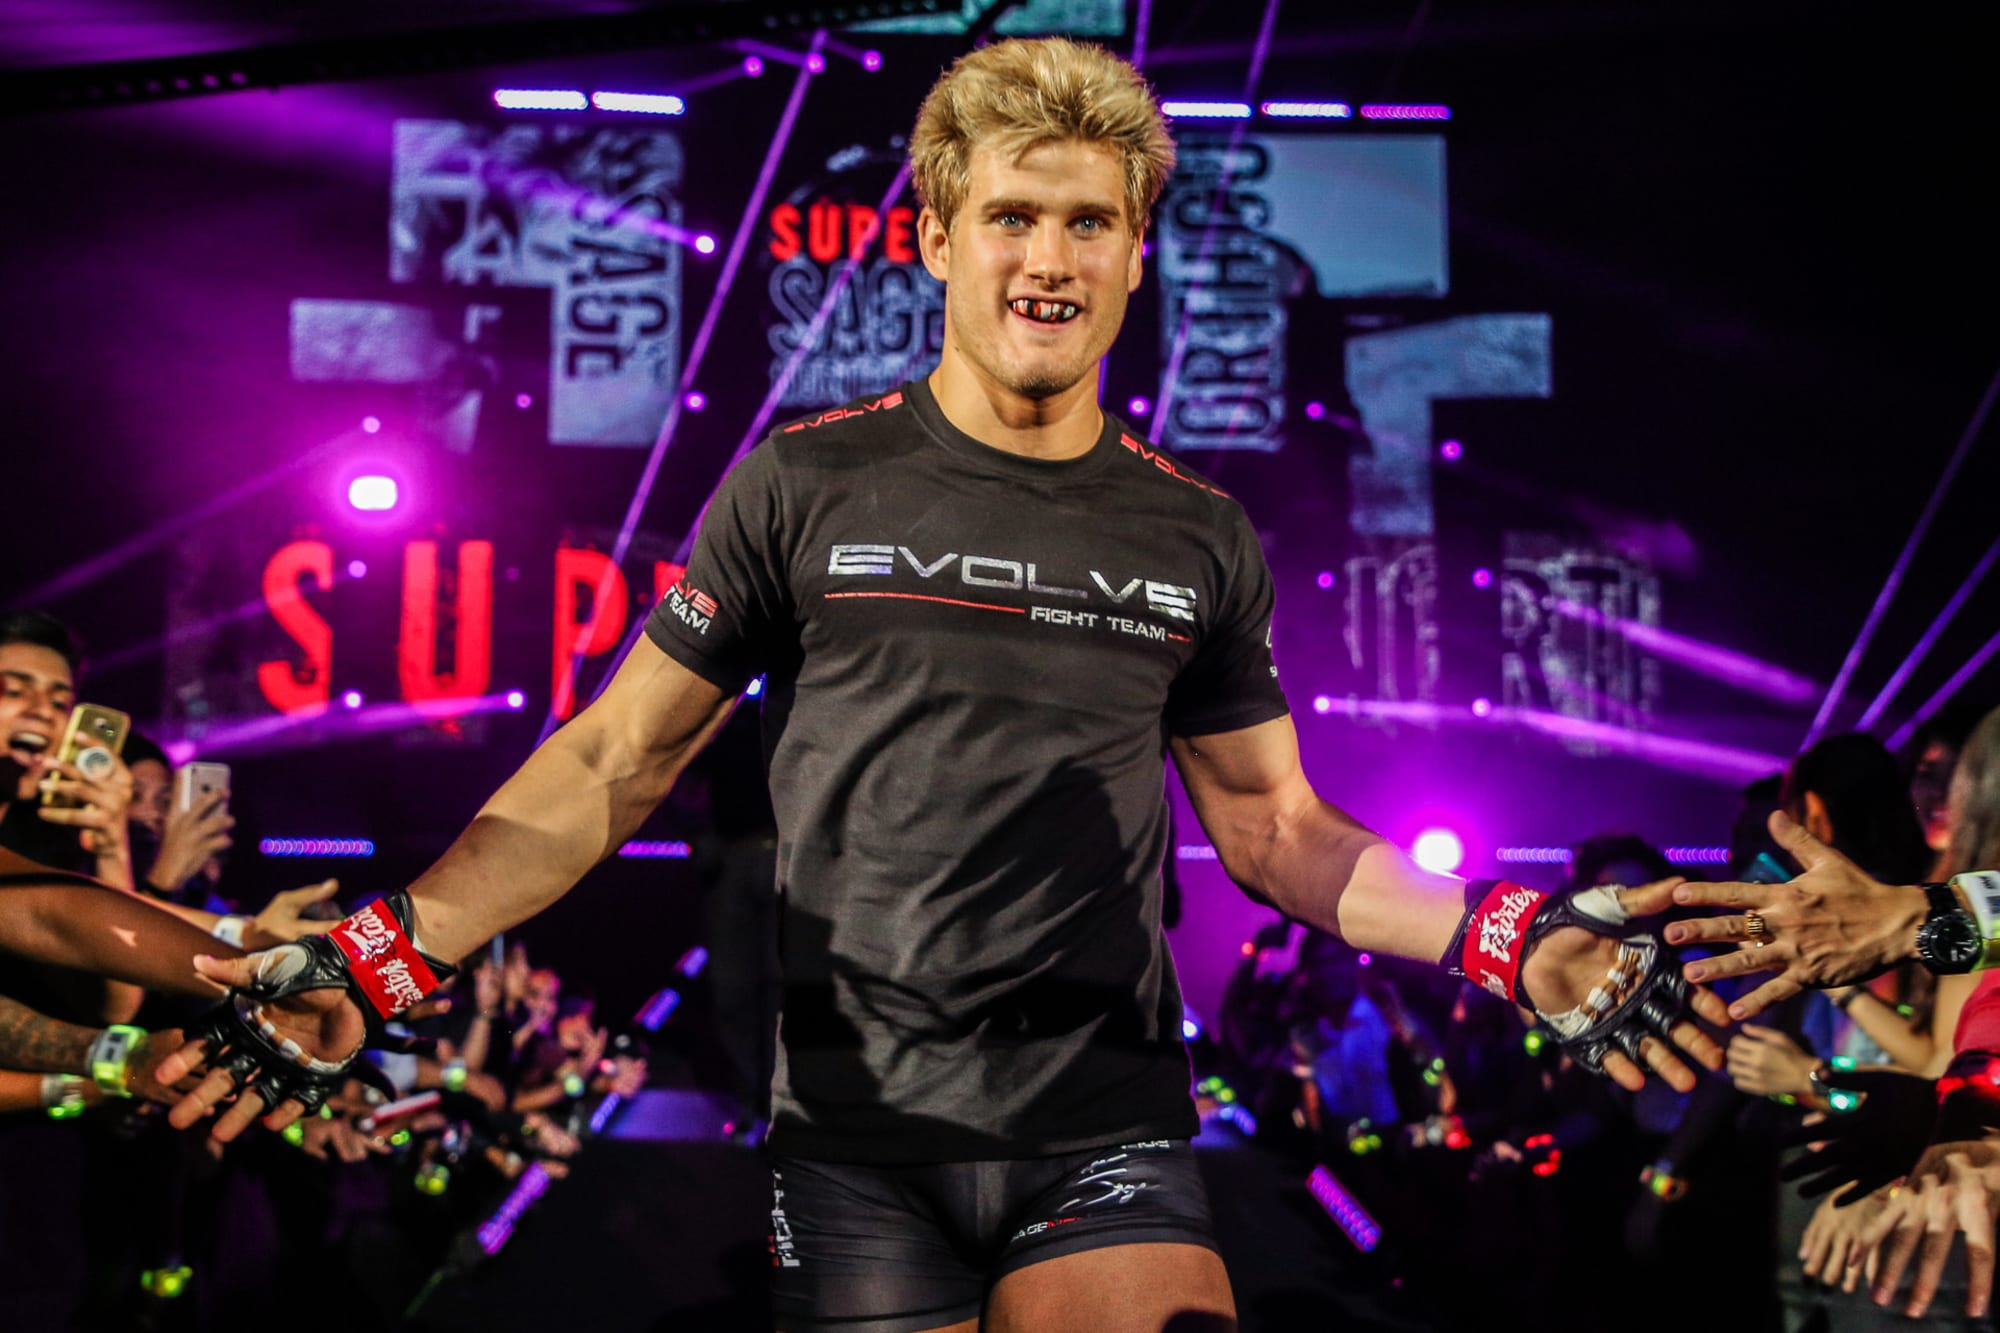 Sage Northcutt's muscles are out of control in latest Instagram photo